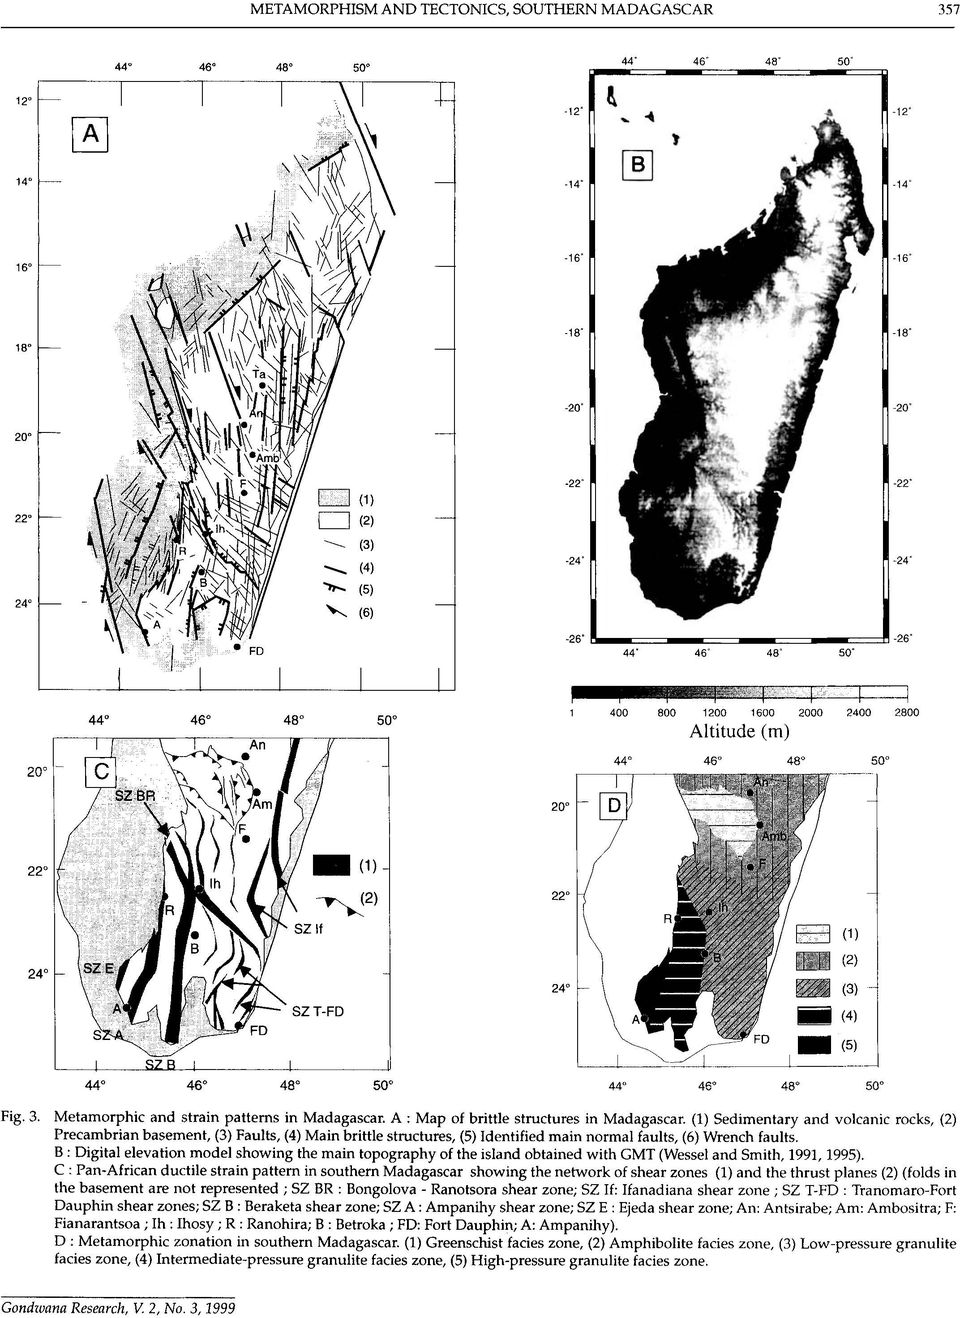 Metamorphic and strain patterns in Madagascar. A : Map of brittle structures in Madagascar.